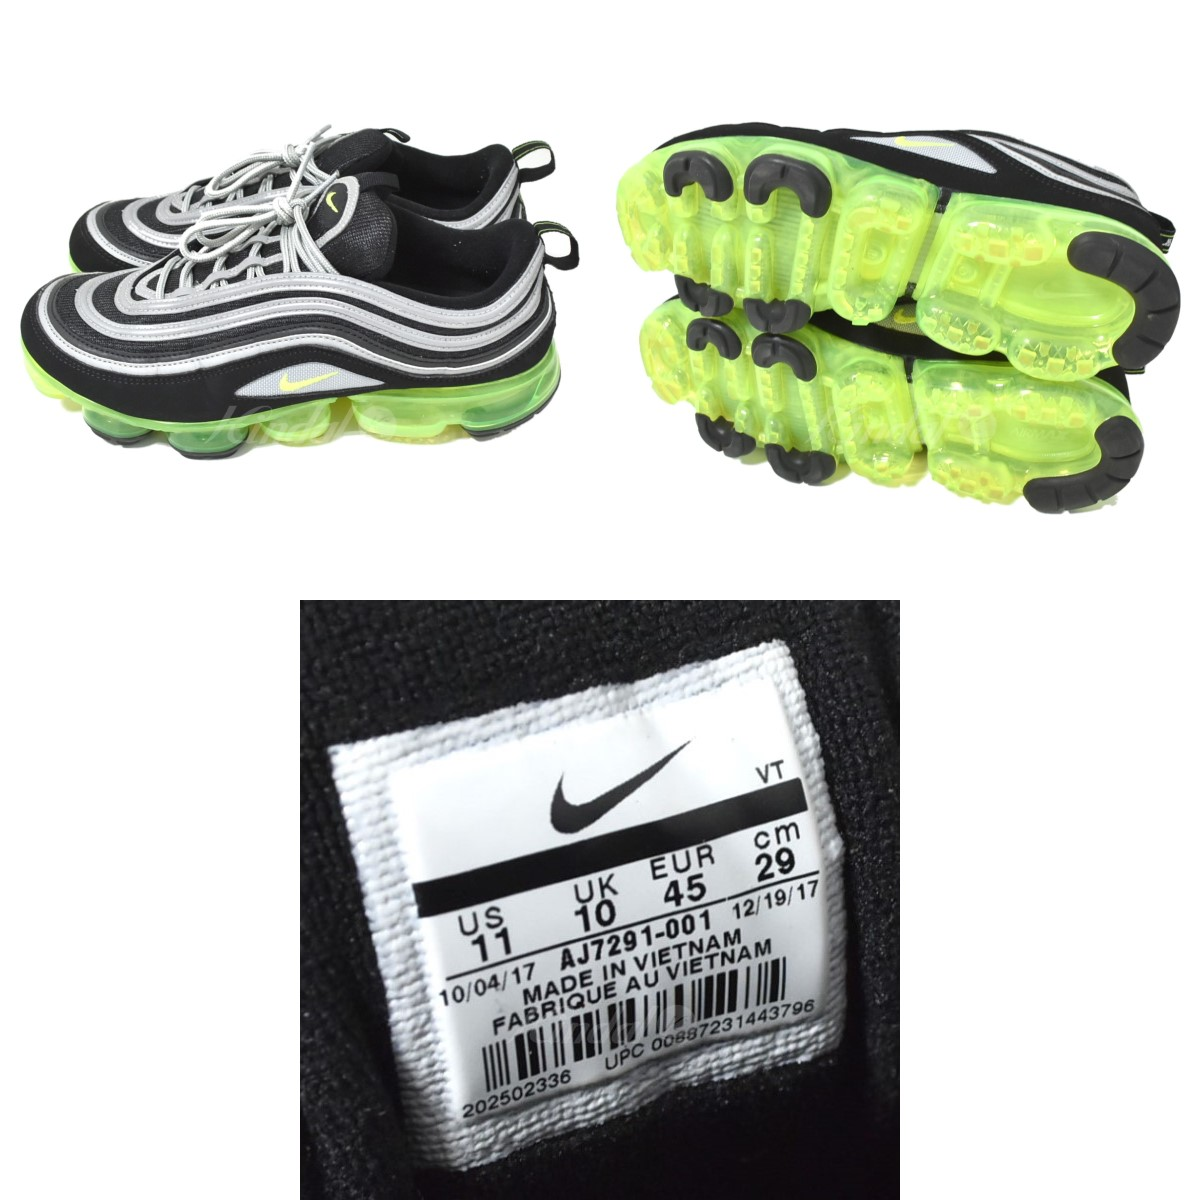 eddbefefc0 ... NIKE AIR VAPORMAX 97 sneakers black X yellow size: 29 0 (Nike) ...